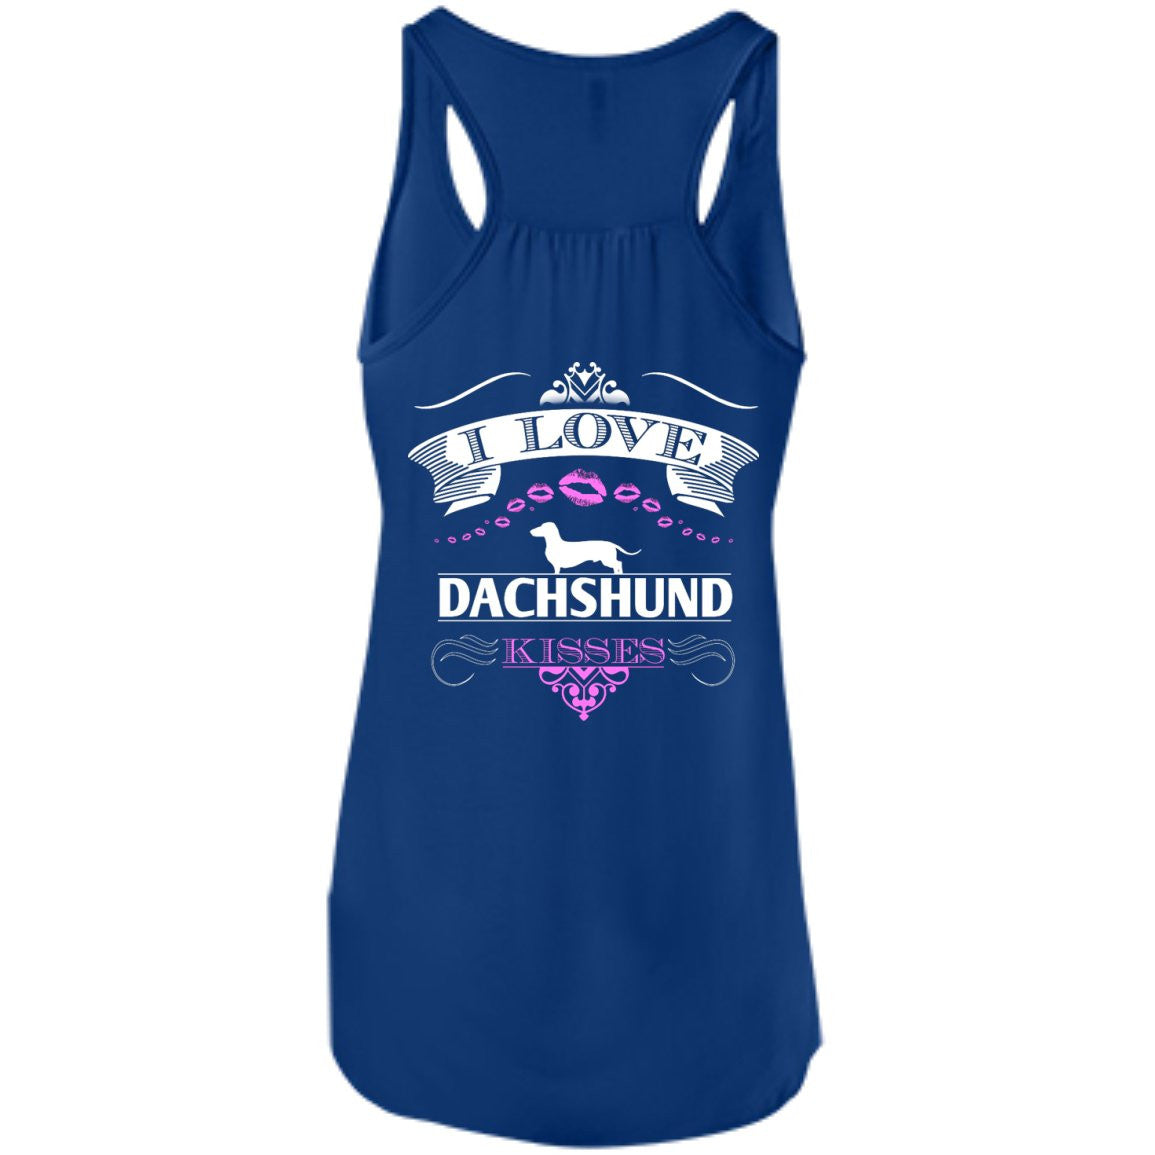 I LOVE DACHSHUND KISSES - BACK DESIGN - Bella+Canvas Flowy Racerback Tank